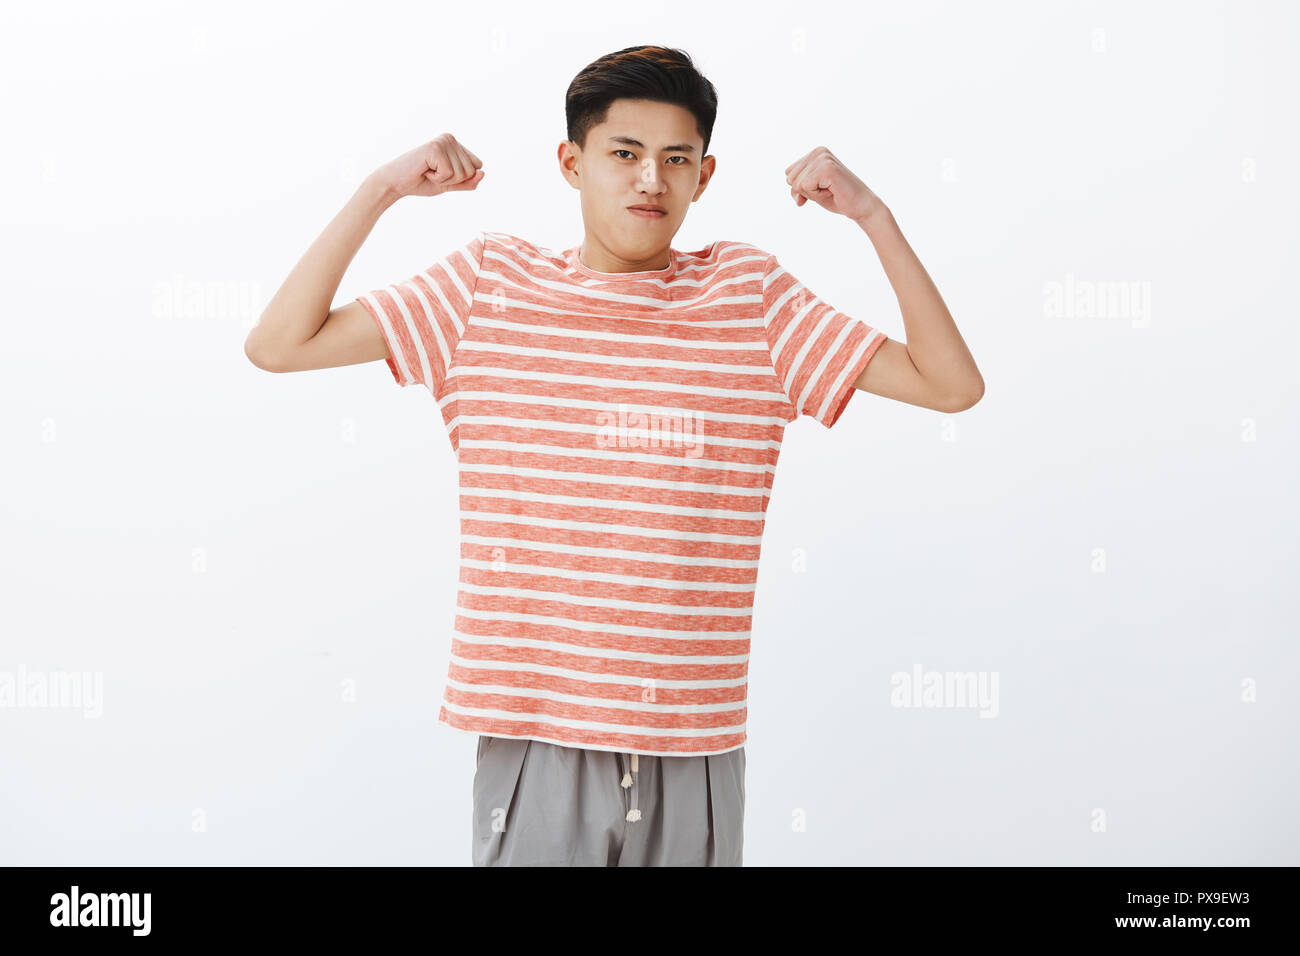 Look how strong I am. Portrait of self-assured funny young slim asian guy raising hands to show biceps or muscles, starting working out, straining and holding breath to look masculine - Stock Image